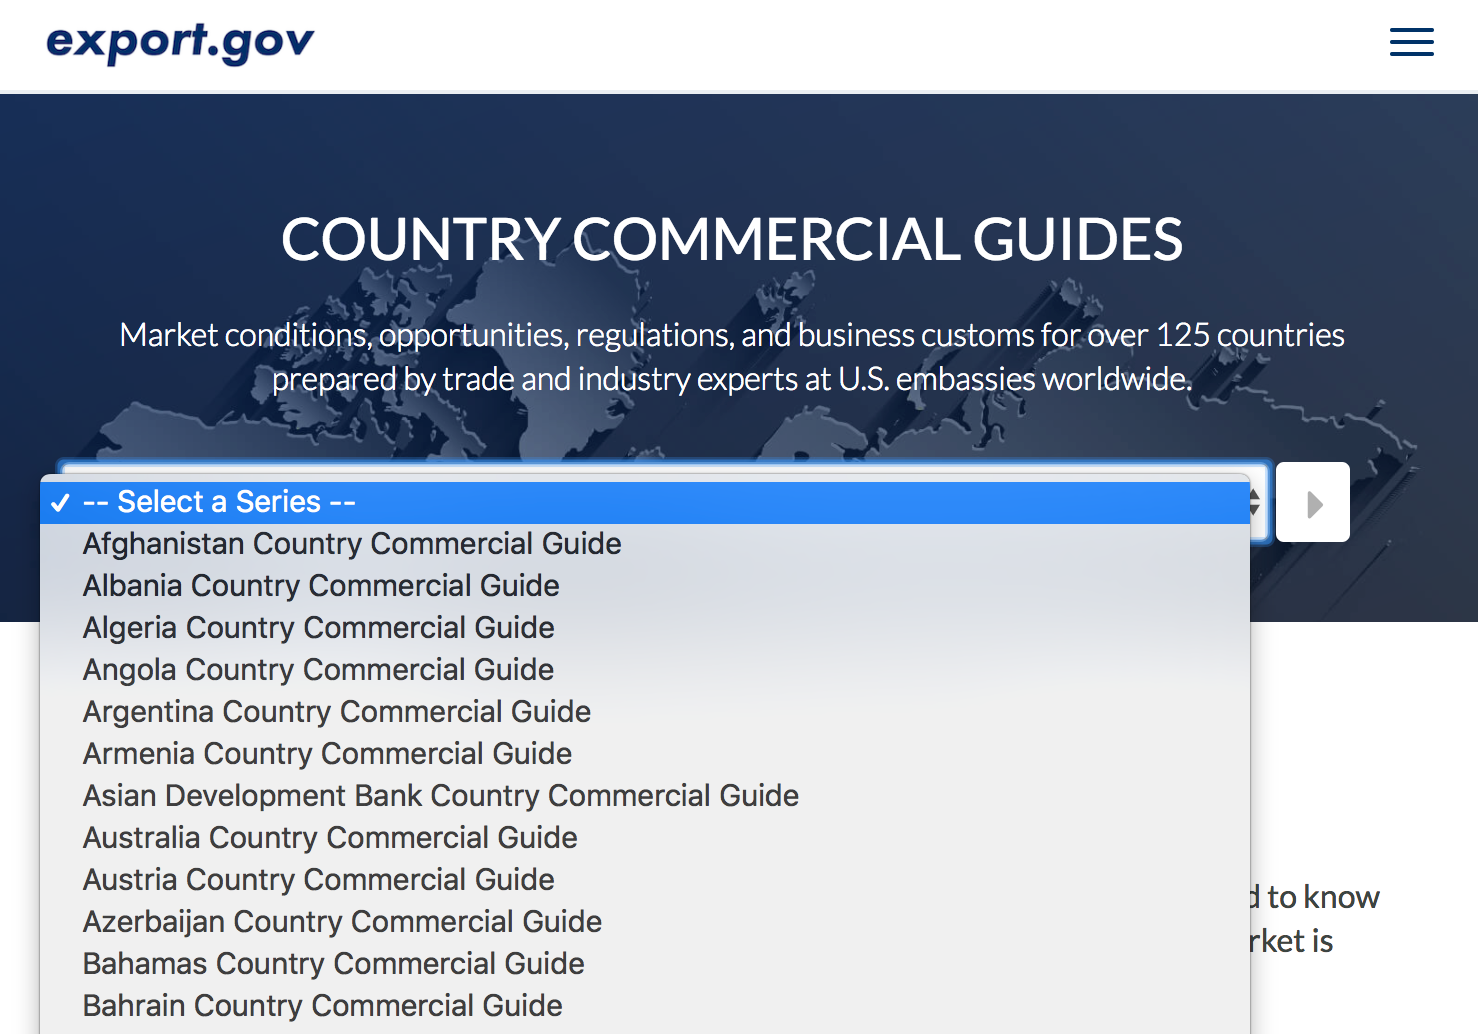 Country commercial guides from Export.gov on global fulfillment